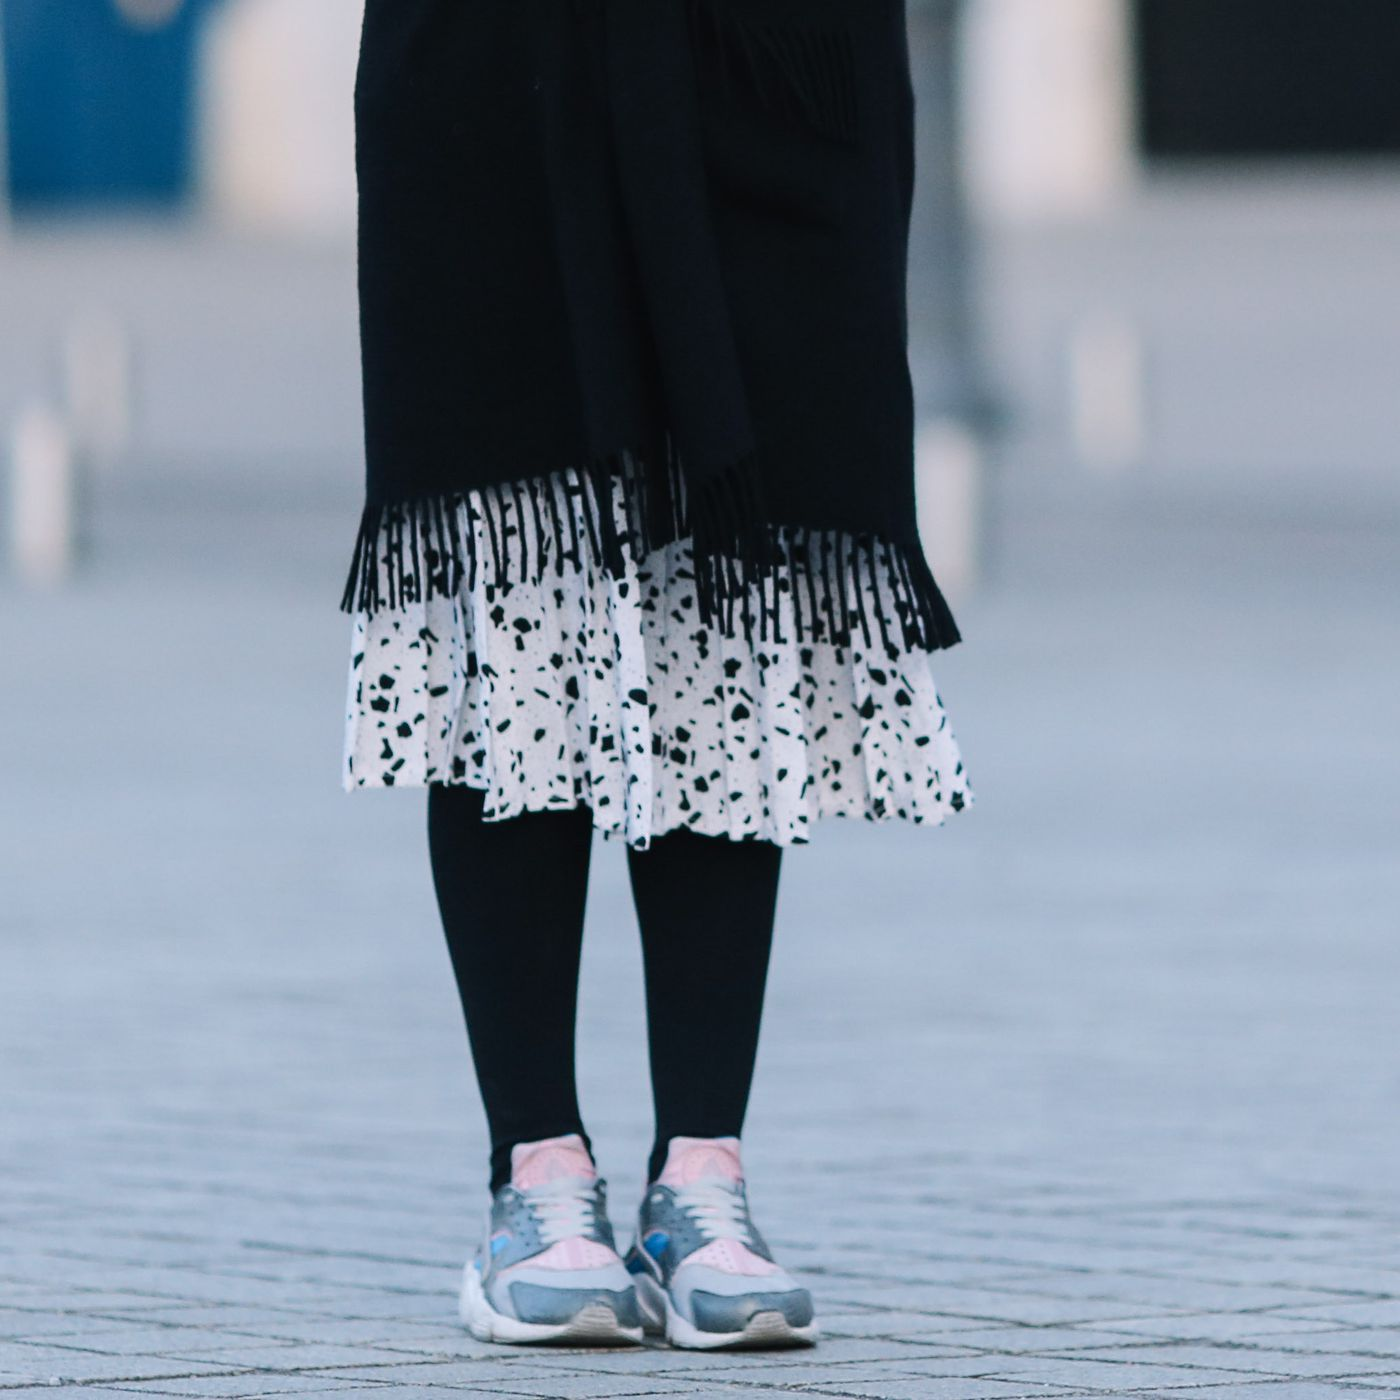 Wearing Skirts Over Pants Helps Me Straddle Two Worlds - Racked